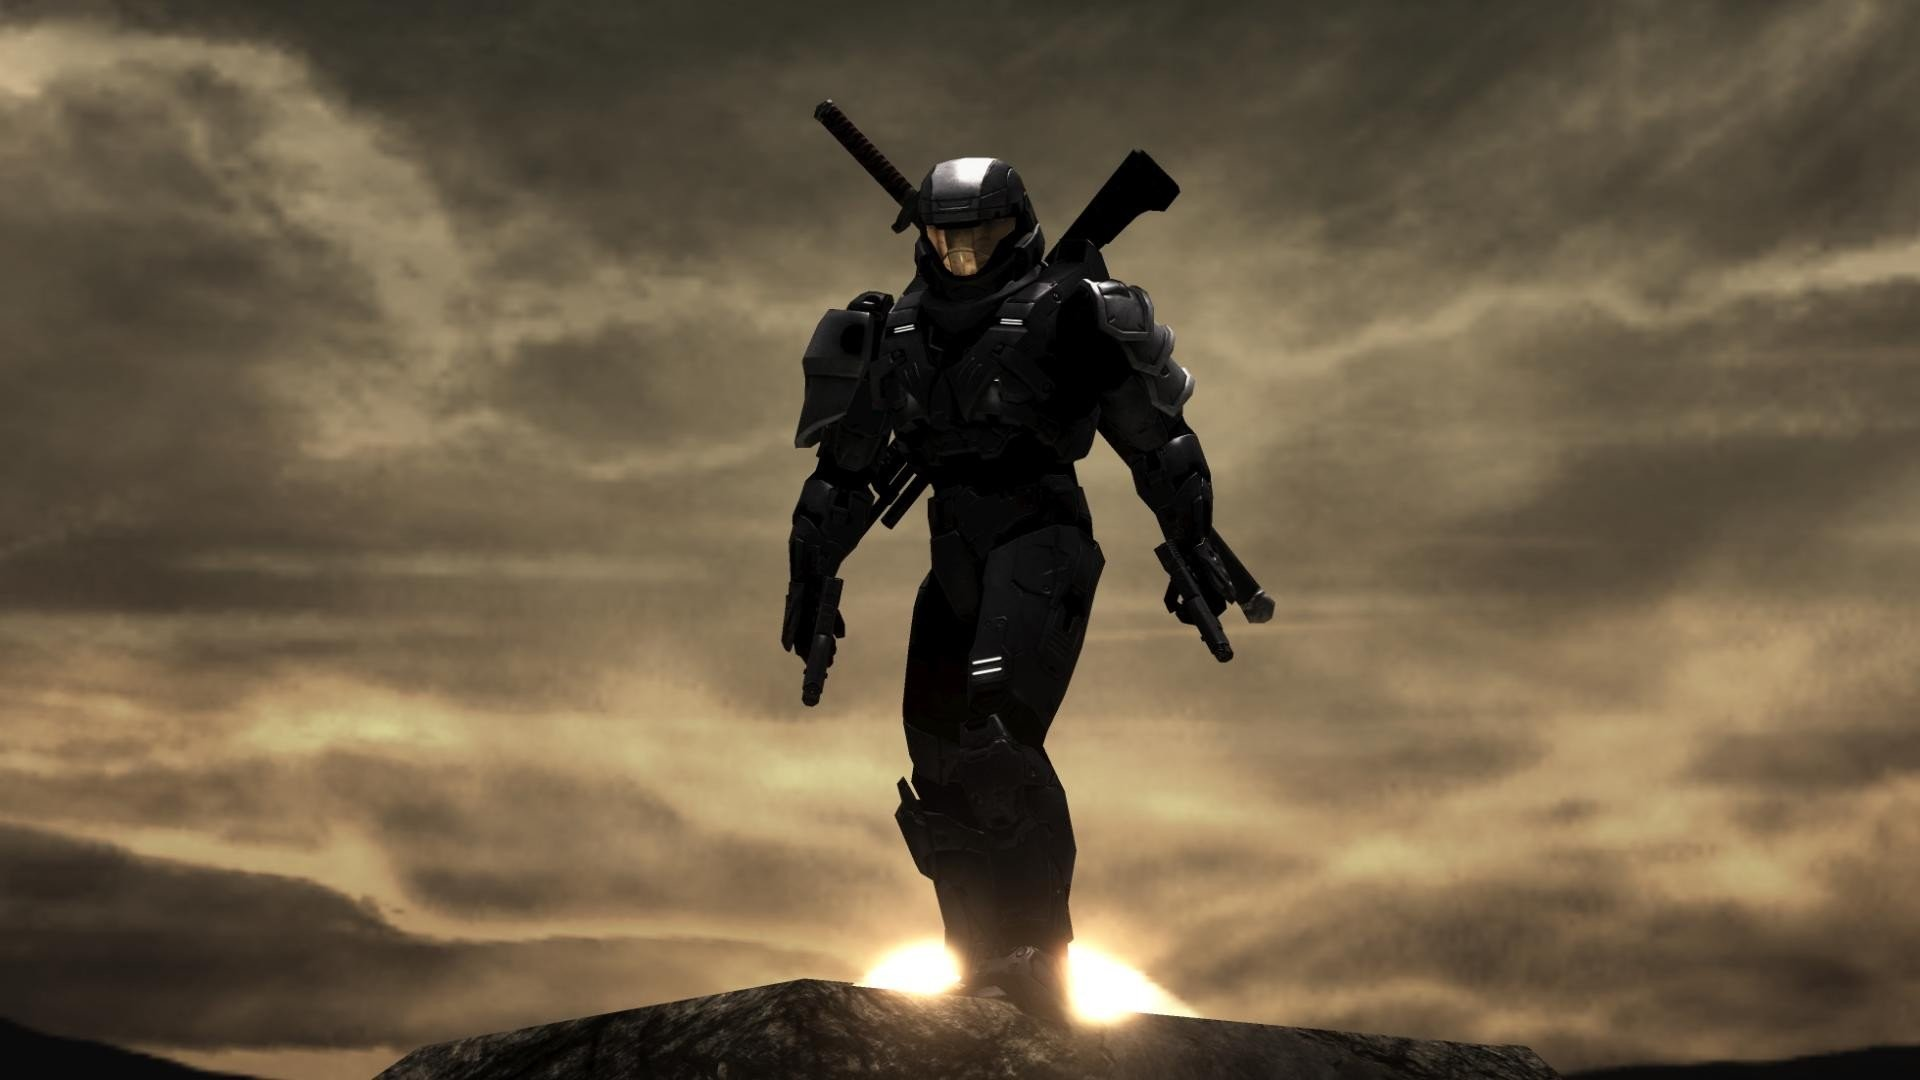 Master Chief Wallpaper 1080p (79+ images)